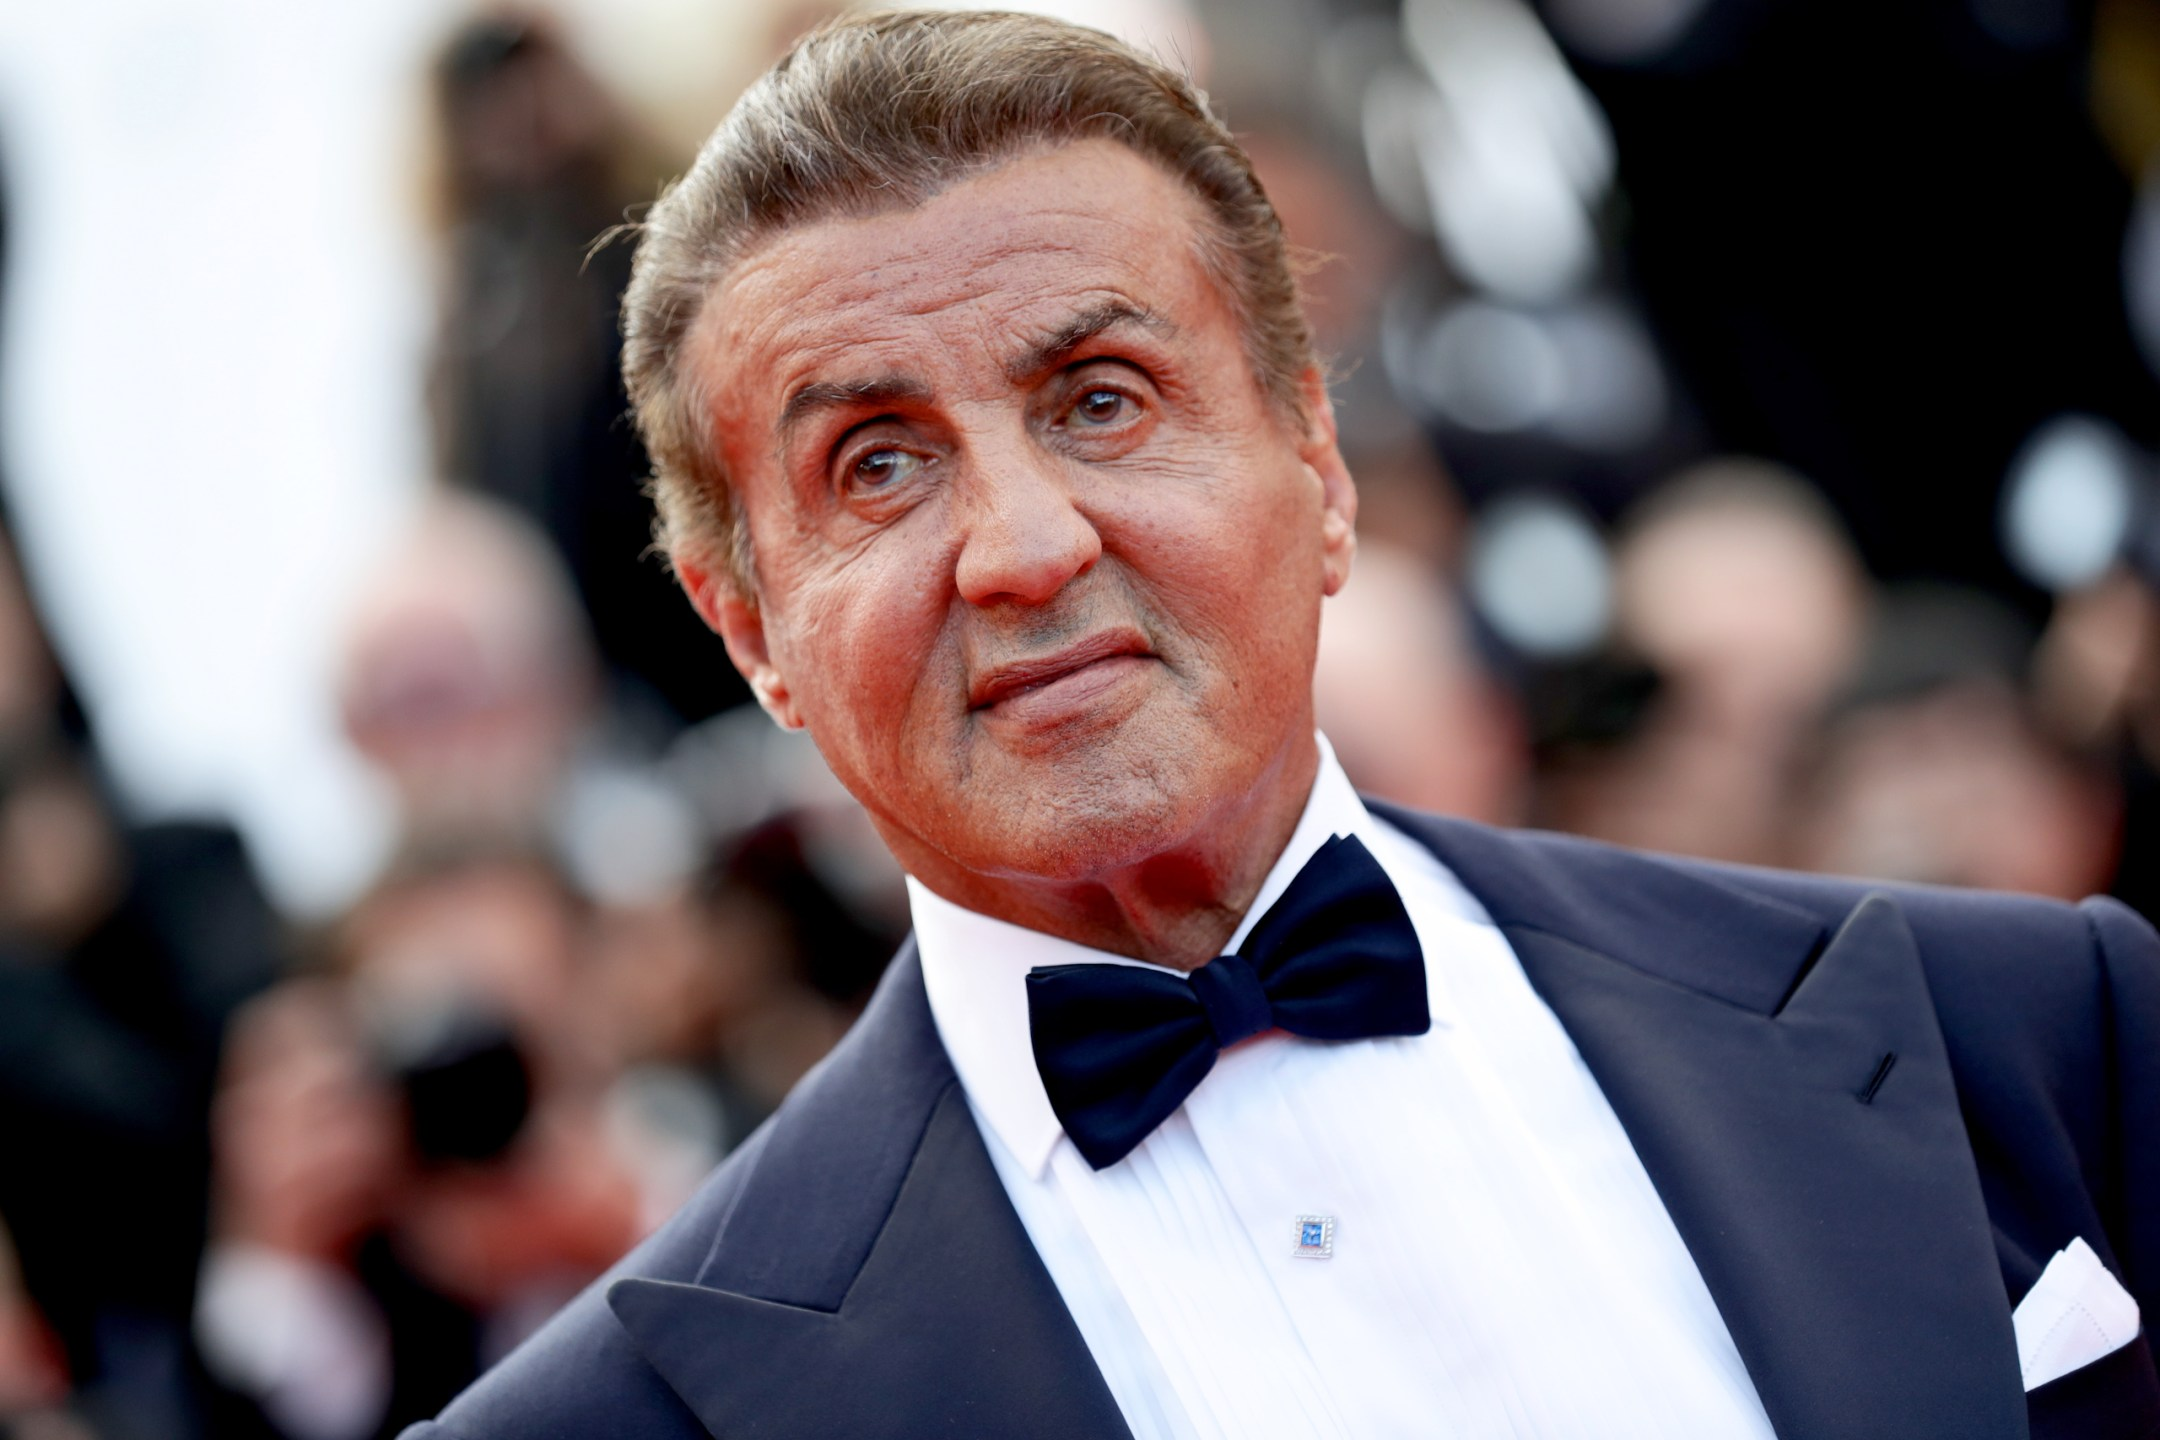 Sylvester Stallone Charges Fans Over 1 000 For Selfies In